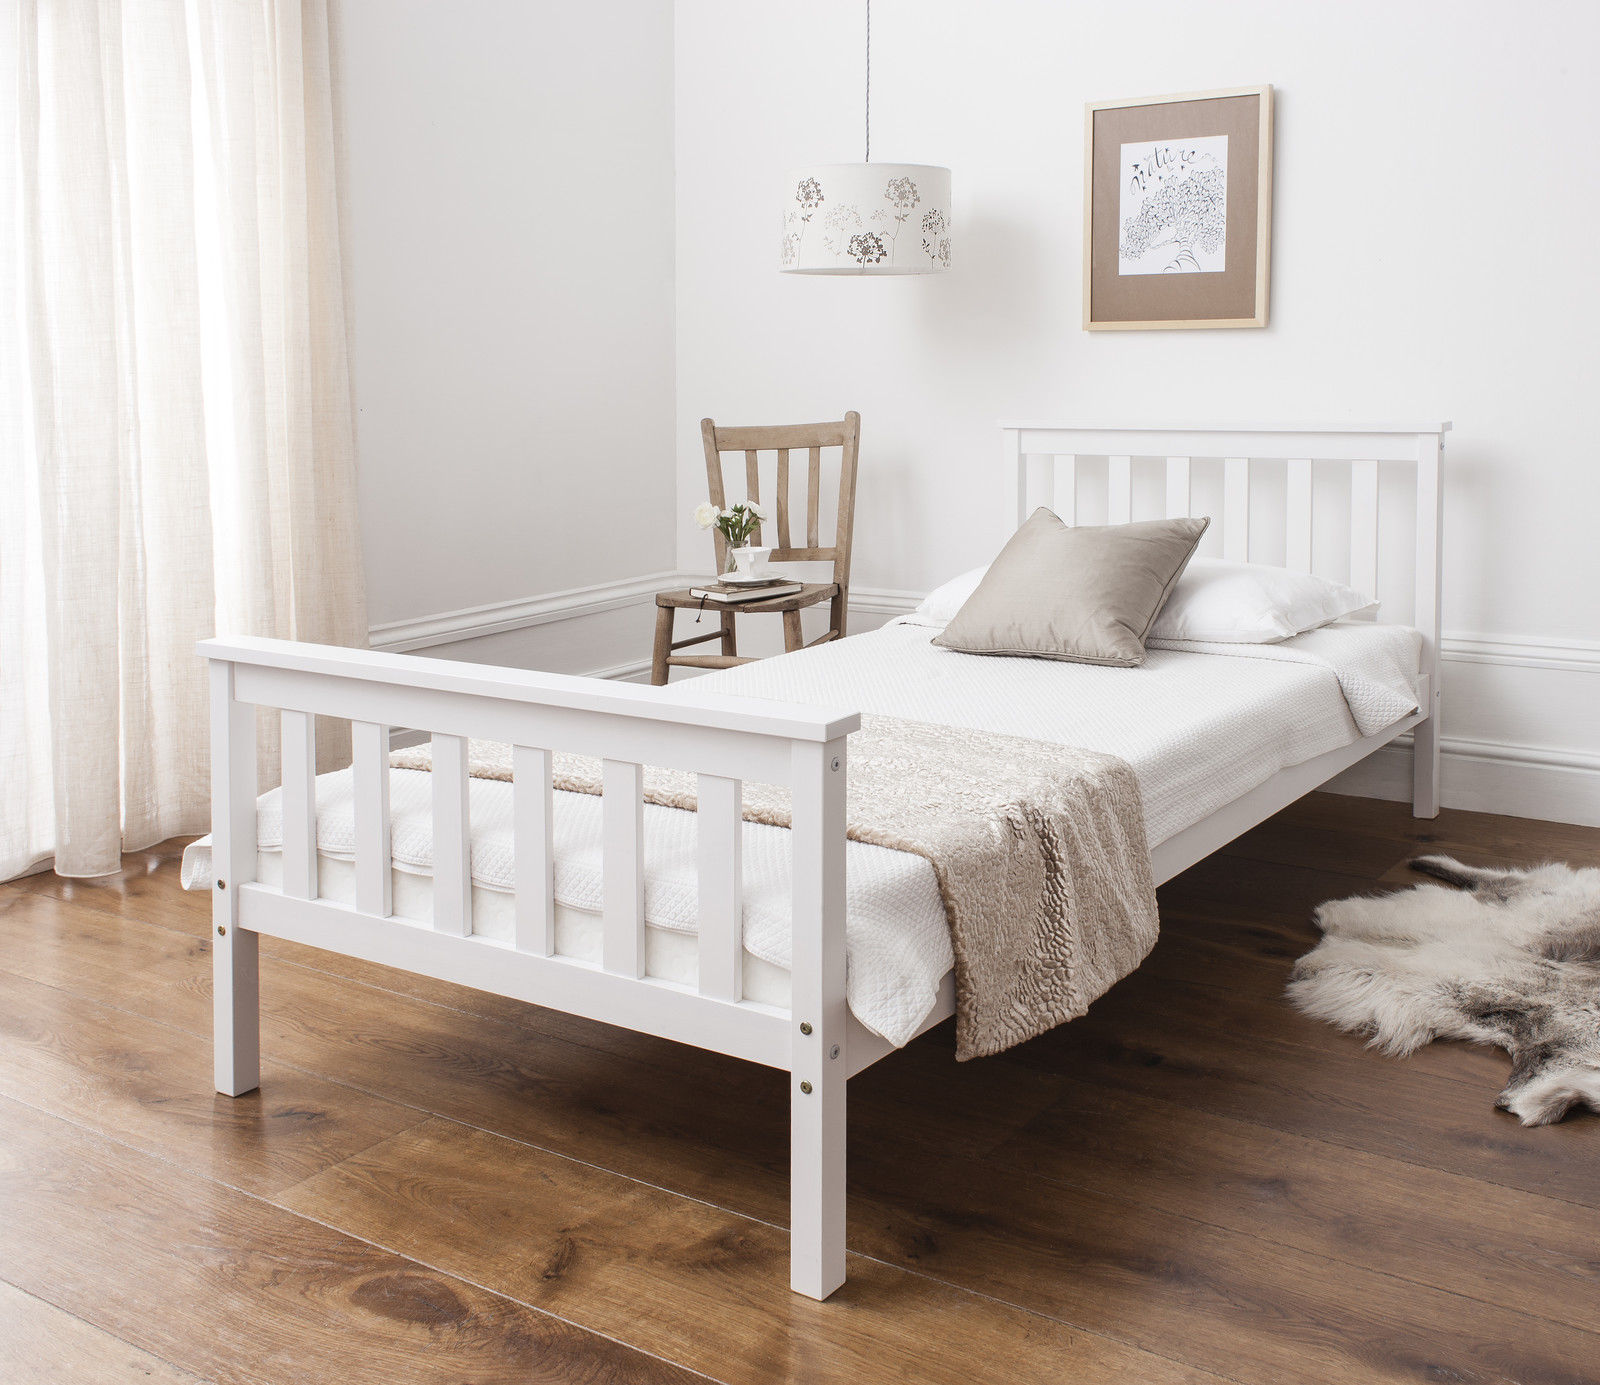 Wooden Beds – Interiors